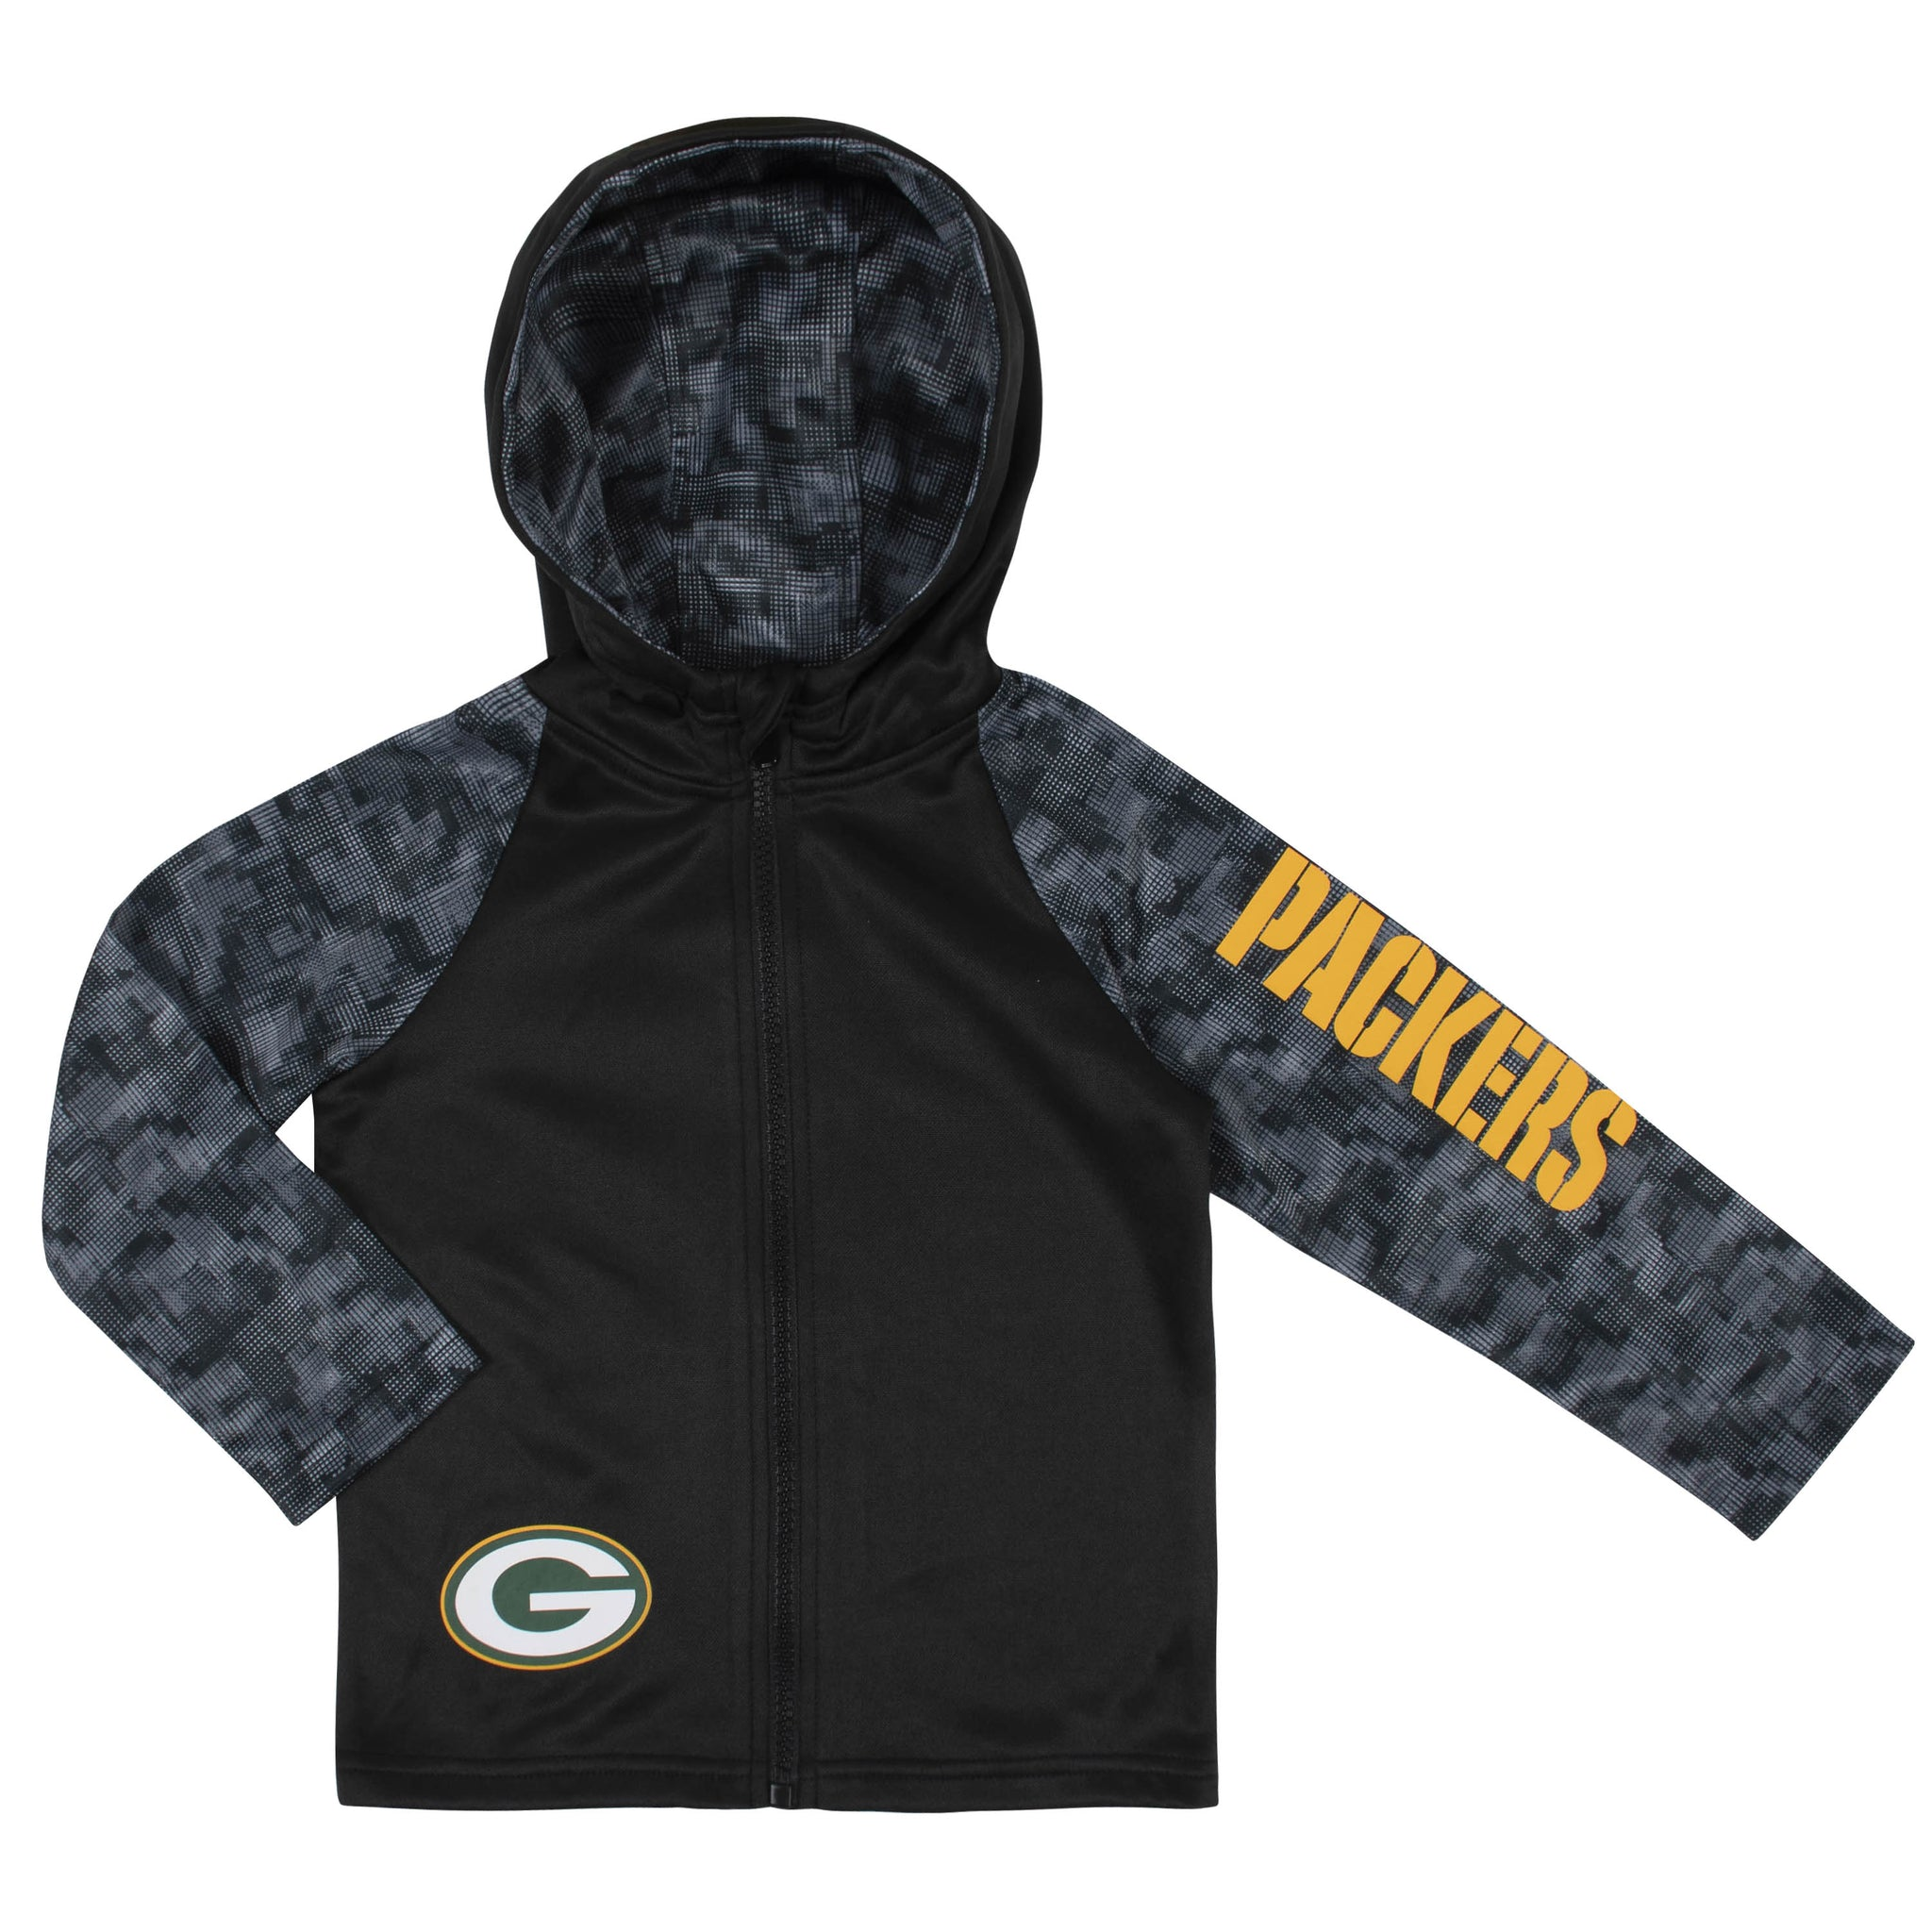 Toddler Boys Green Bay Packers Hooded Jacket